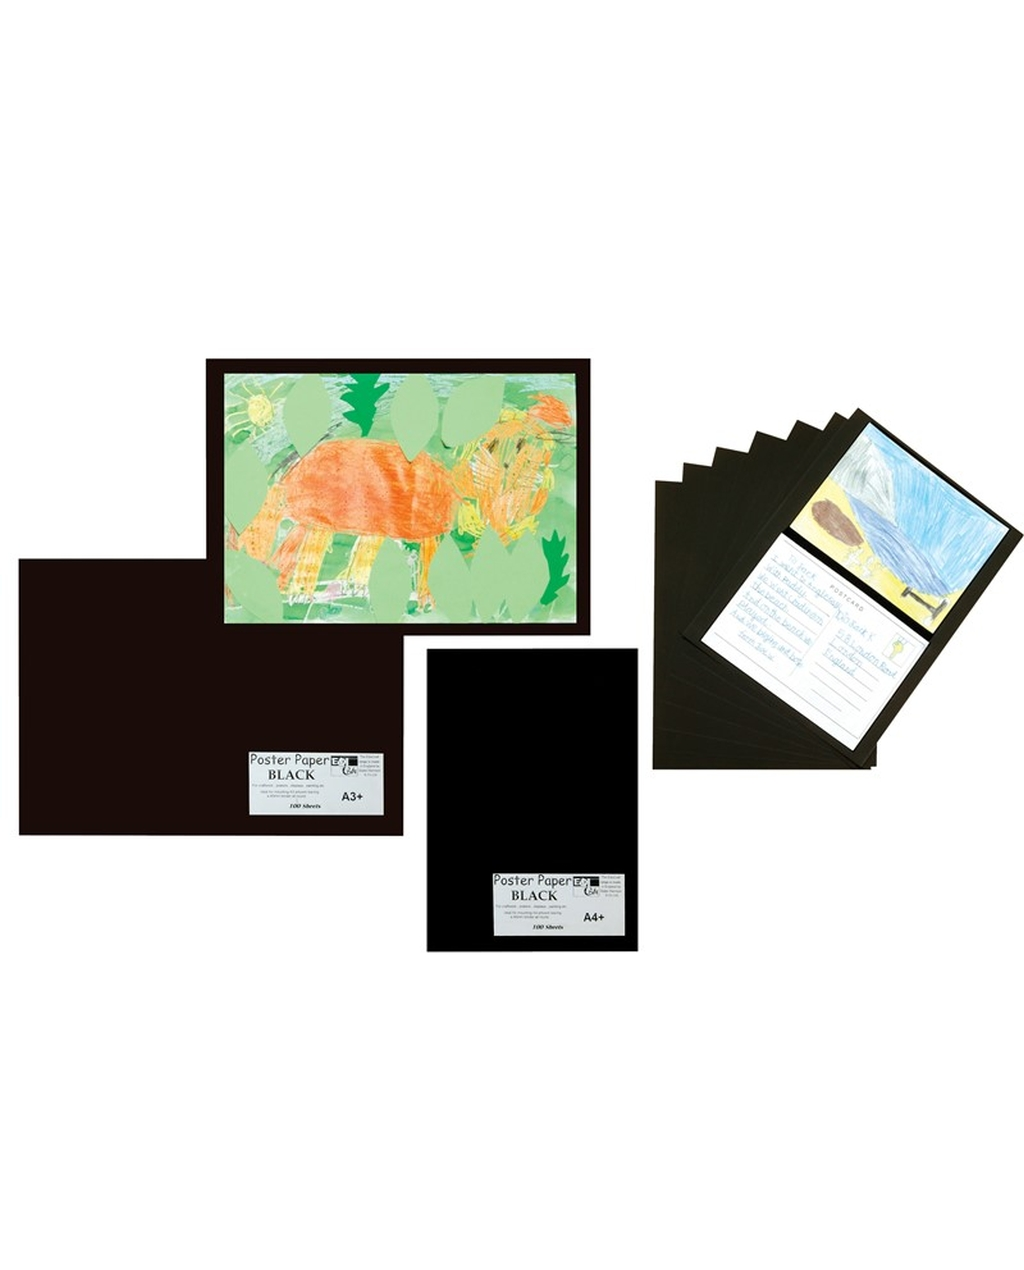 A4+ Black Mounting Paper 85gsm